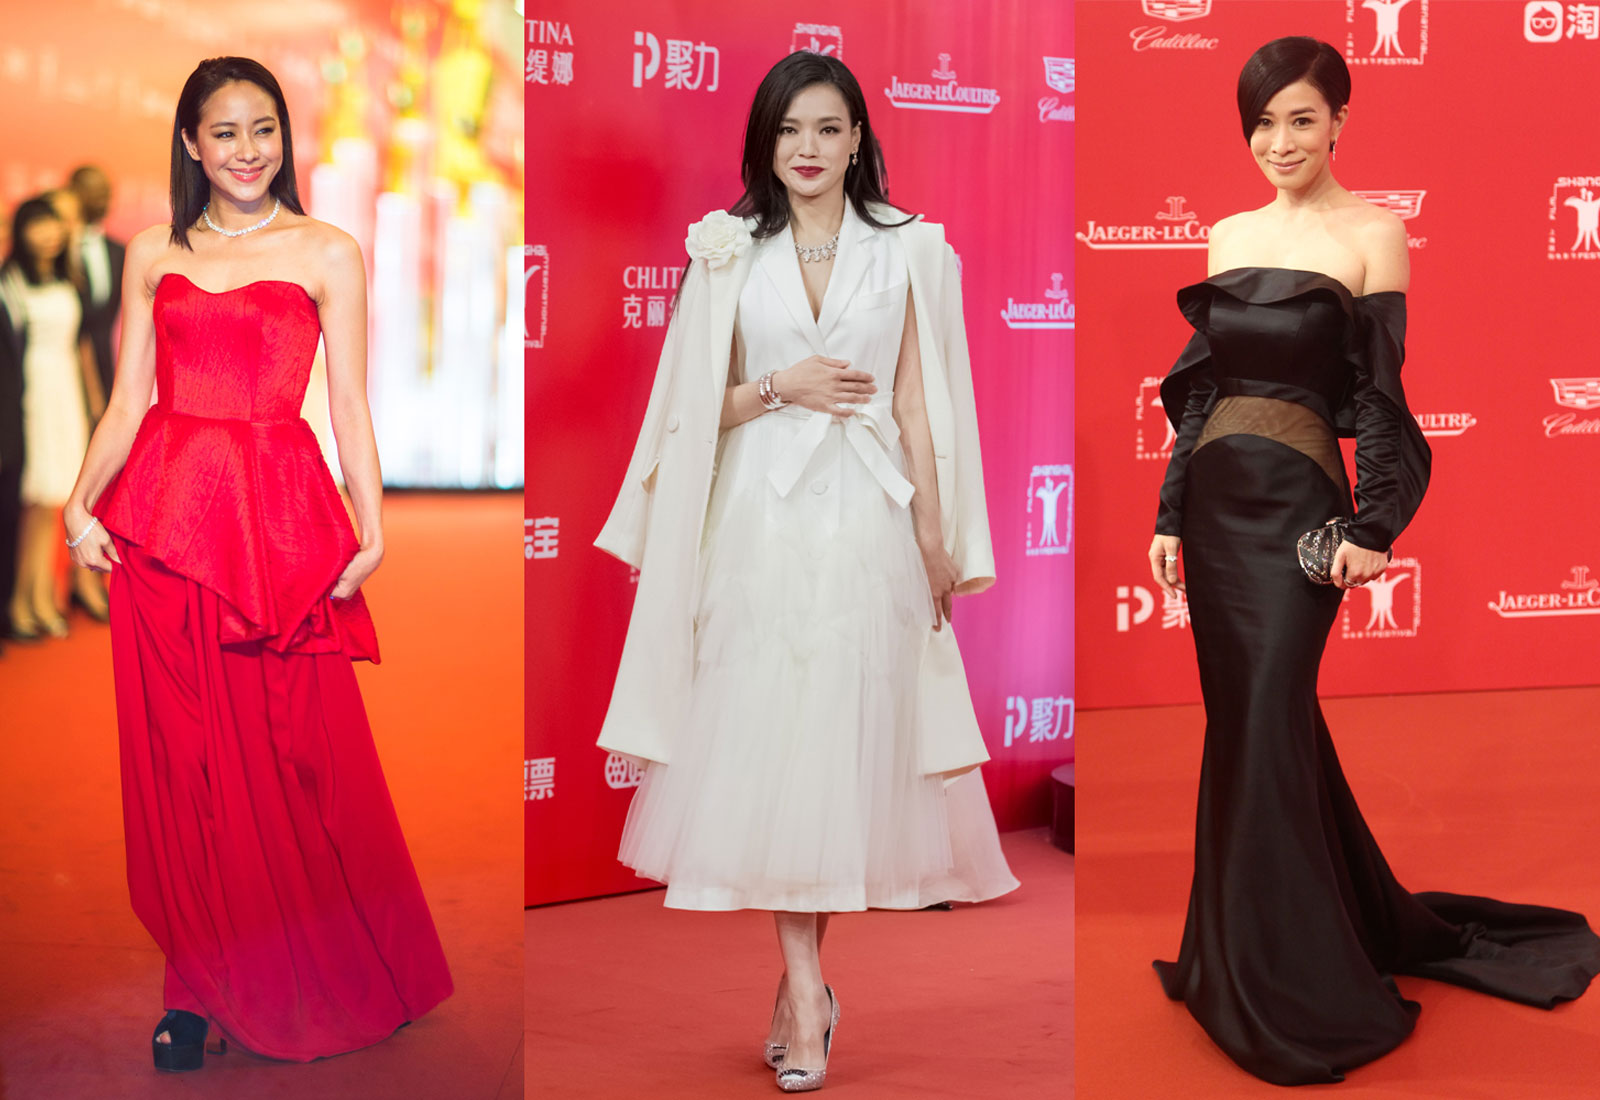 2016 shanghai film festival red carpet fashion roundup shu qi karena lam charmaine sheh 1600 x 1100